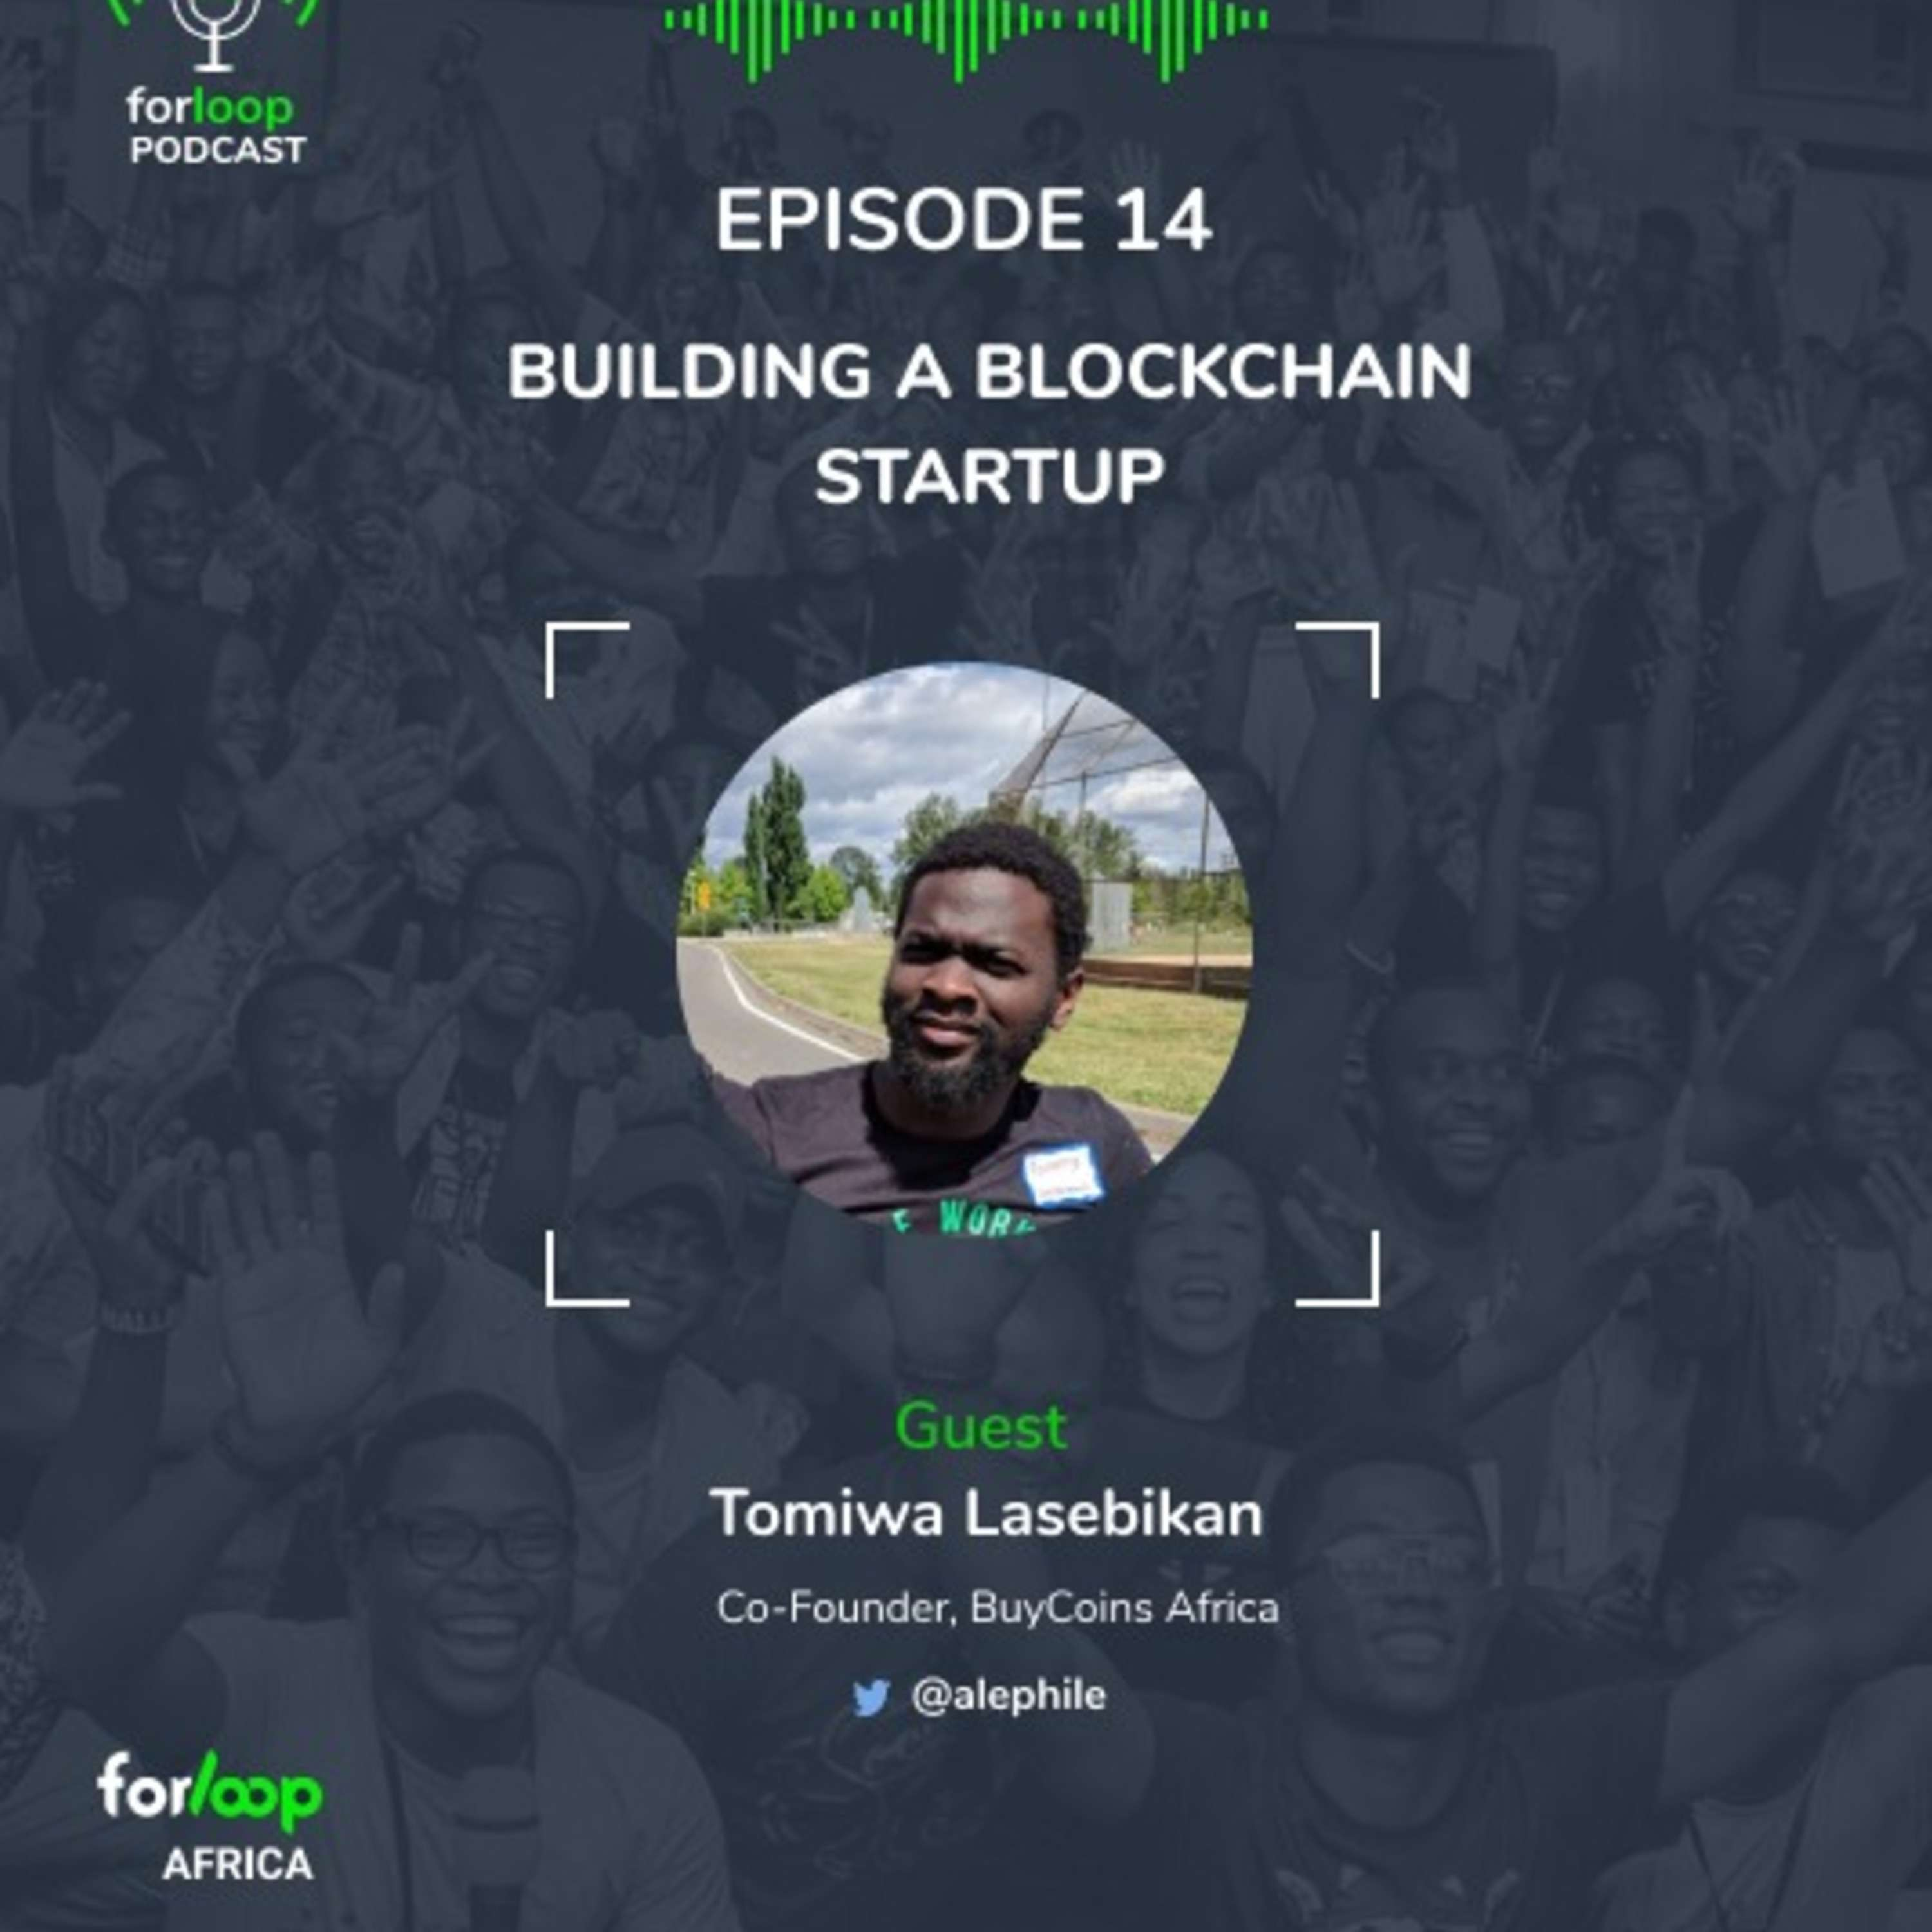 EP.14 - Building a Blockchain Startup